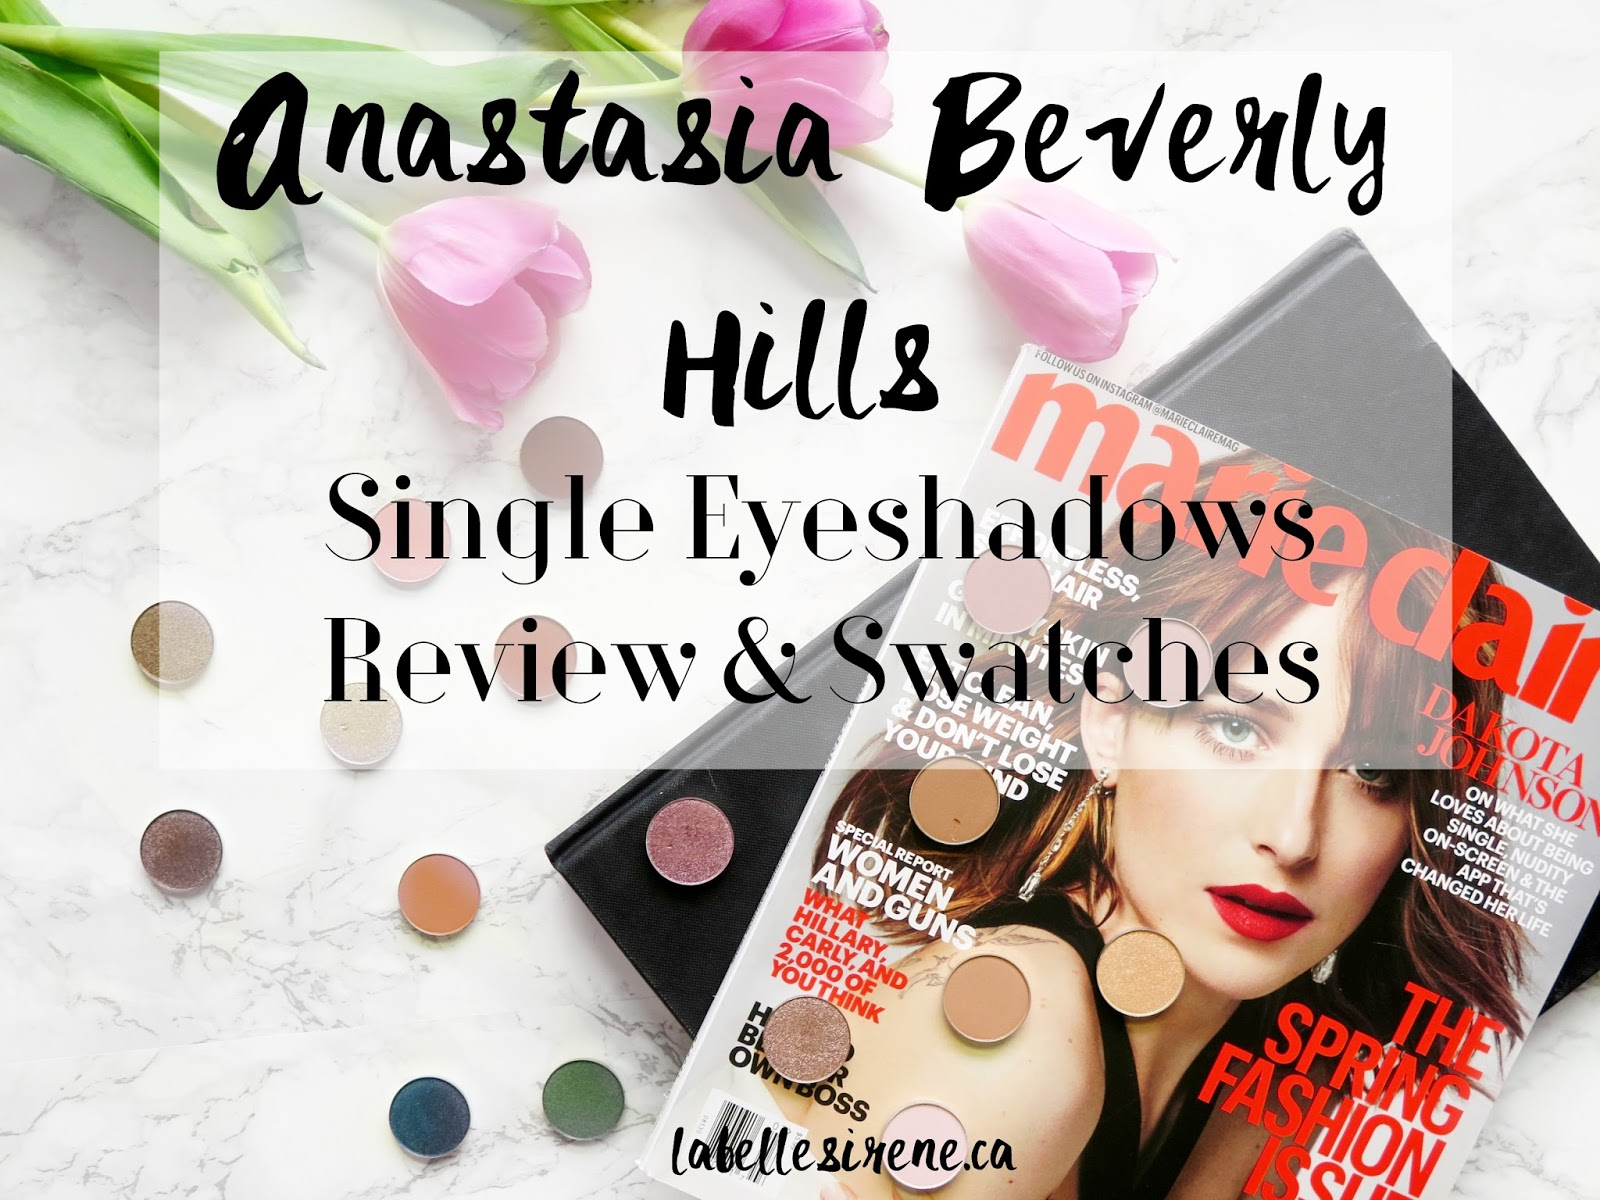 Makeup Royalty | Anastasia Beverly Hills Single Eyeshadows | Review & Swatches | labellesirene.ca